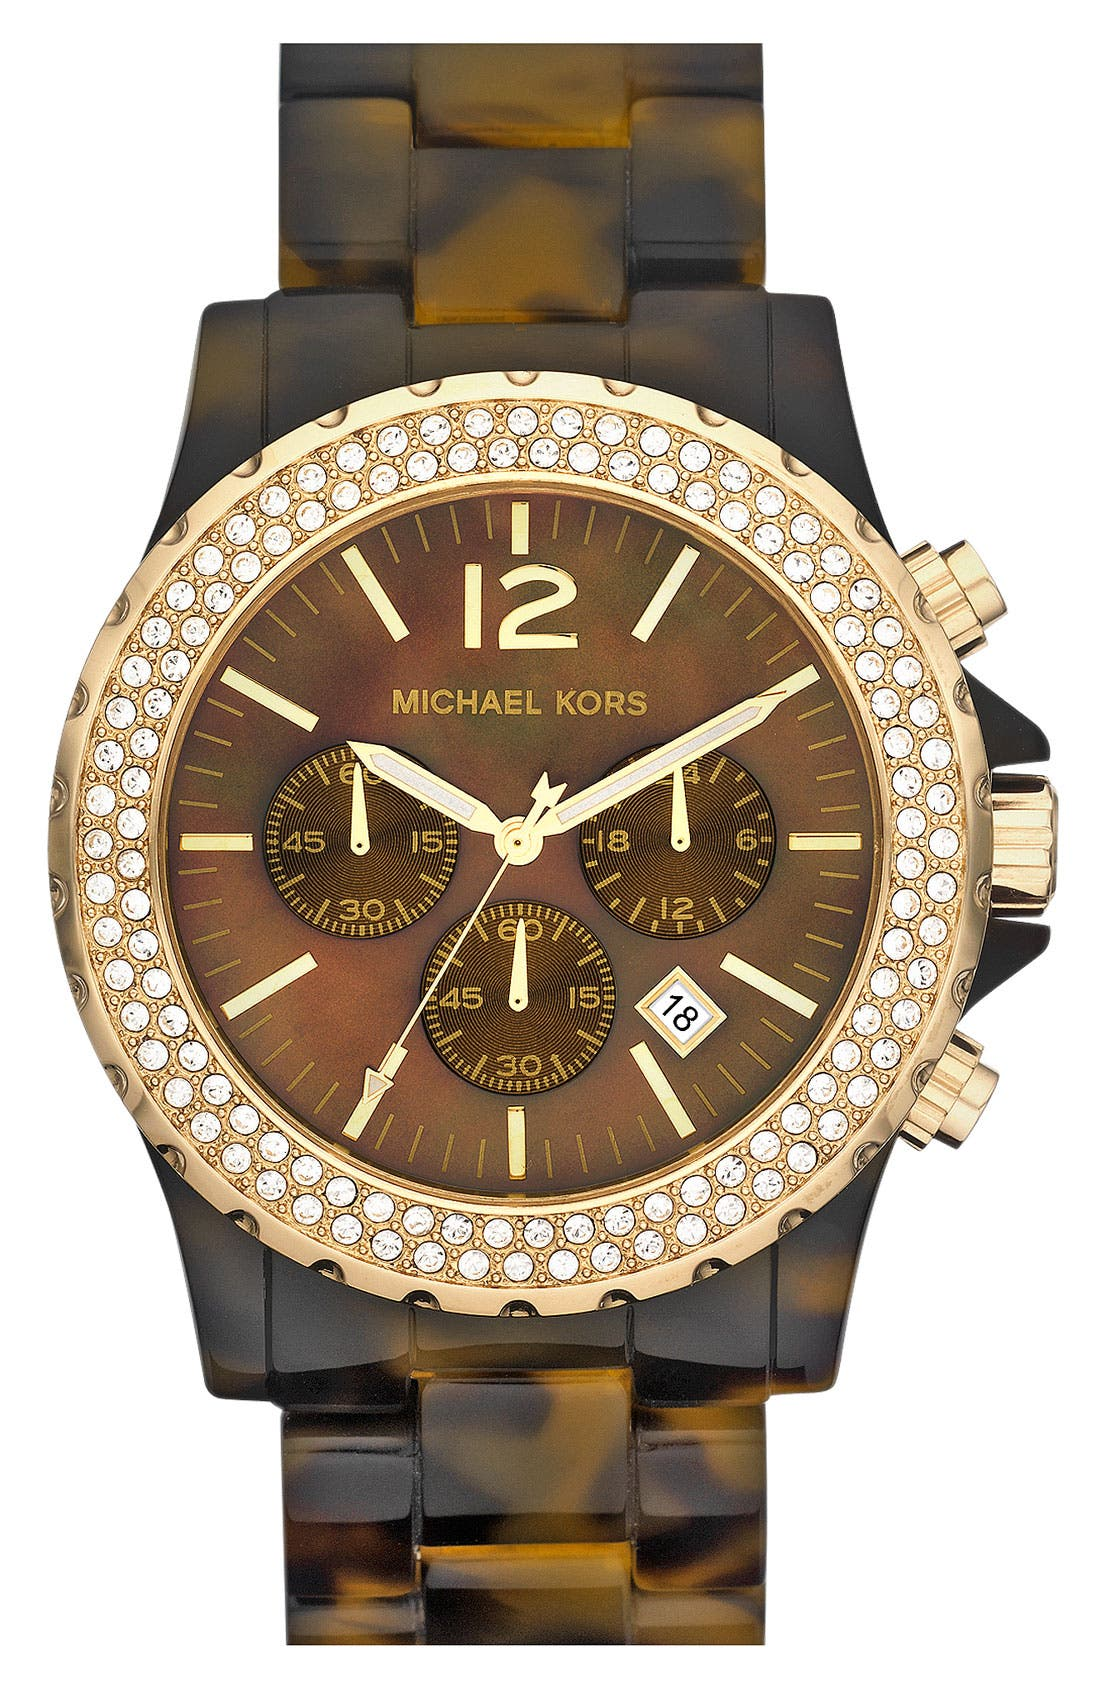 Main Image - Michael Kors 'Madison' Crystal Bezel Watch